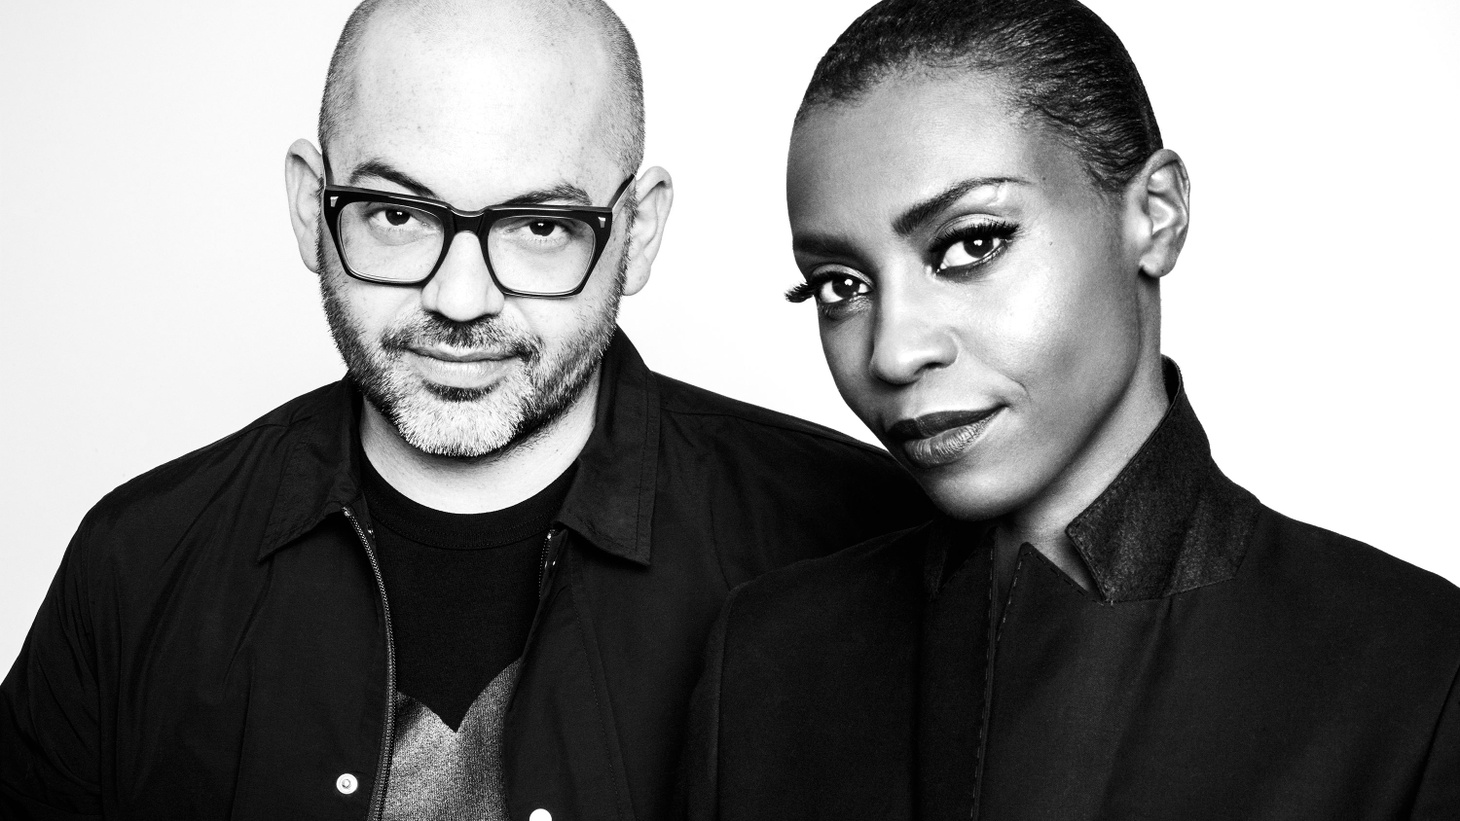 Morcheeba members Skye Edwards and Ross Godfrey quietly launched a new project in the fall of 2016 they simply call SKYE | ROSS.